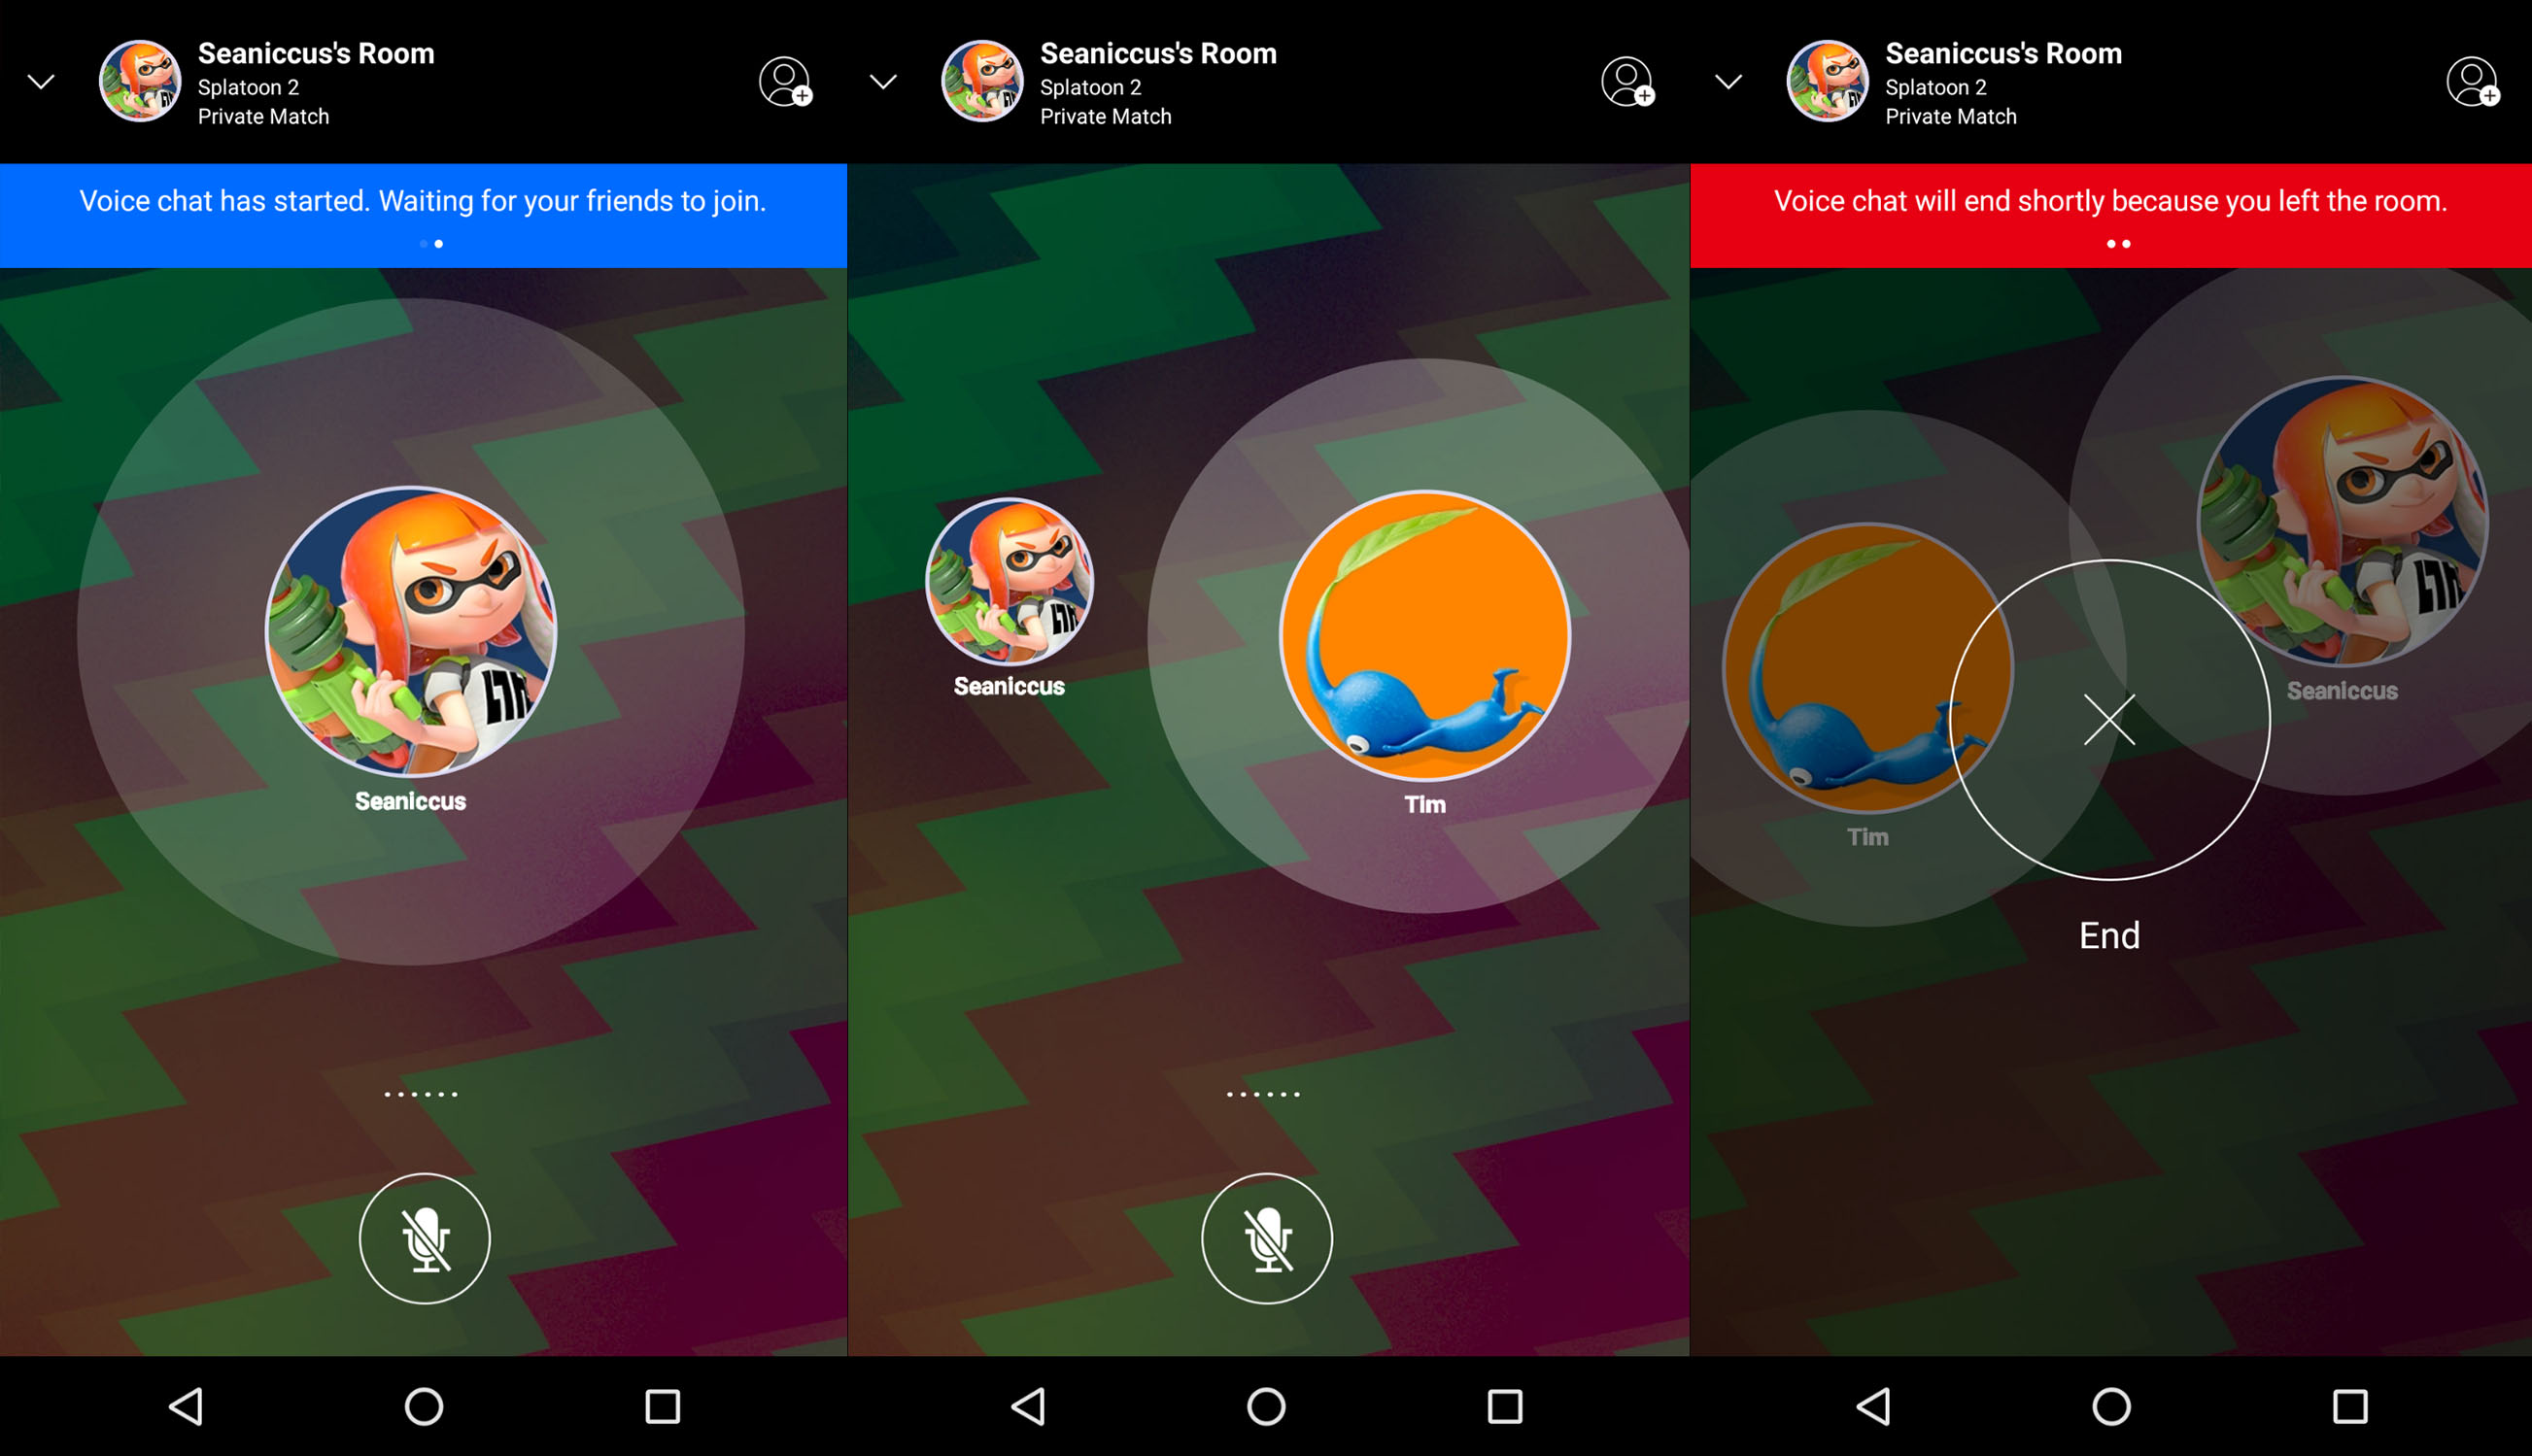 Nintendo's solution for online voice chat feels half-baked